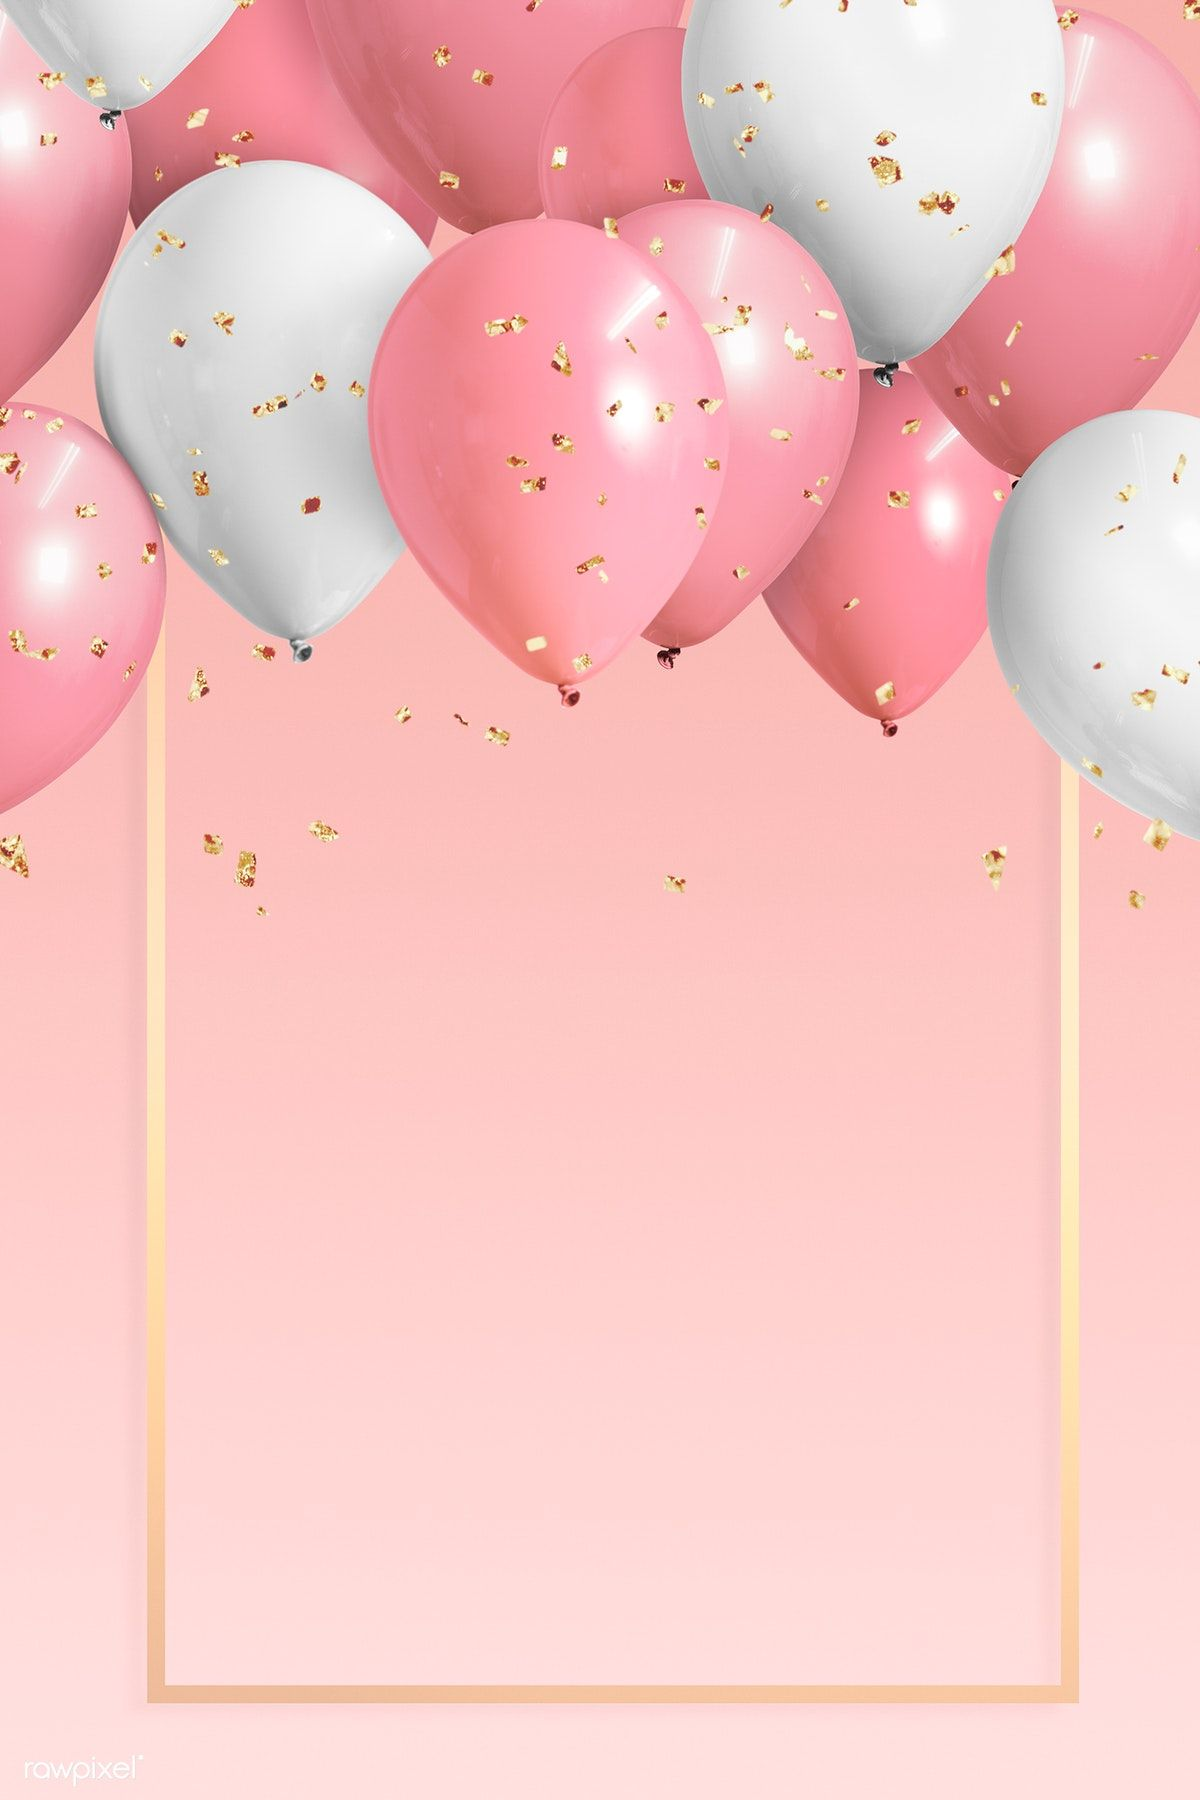 Pink Birthday Wallpapers   Top Free Pink Birthday Backgrounds ...